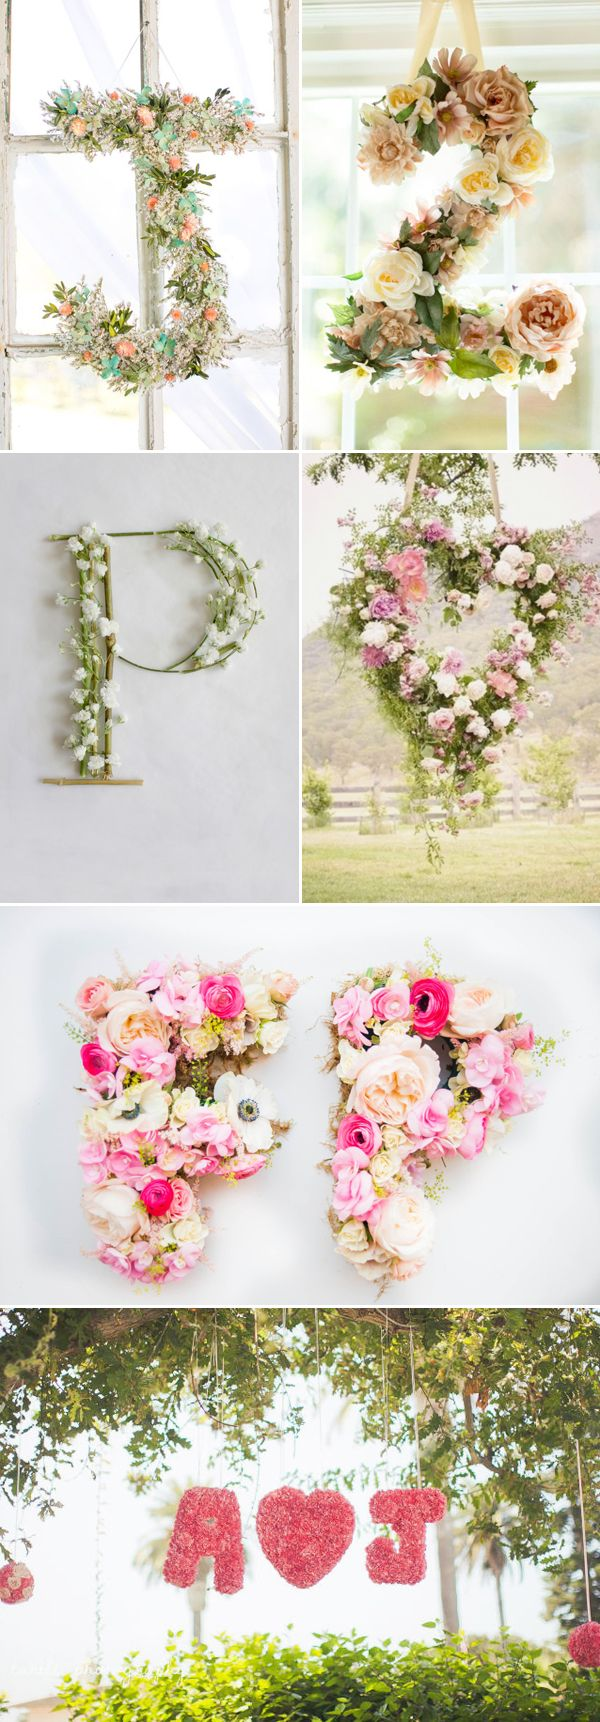 30  Wedding Venue Ideas with Lots of Flowers   http://www.deerpearlflowers.com/wedding-venue-ideas-with-lots-of-flowers/